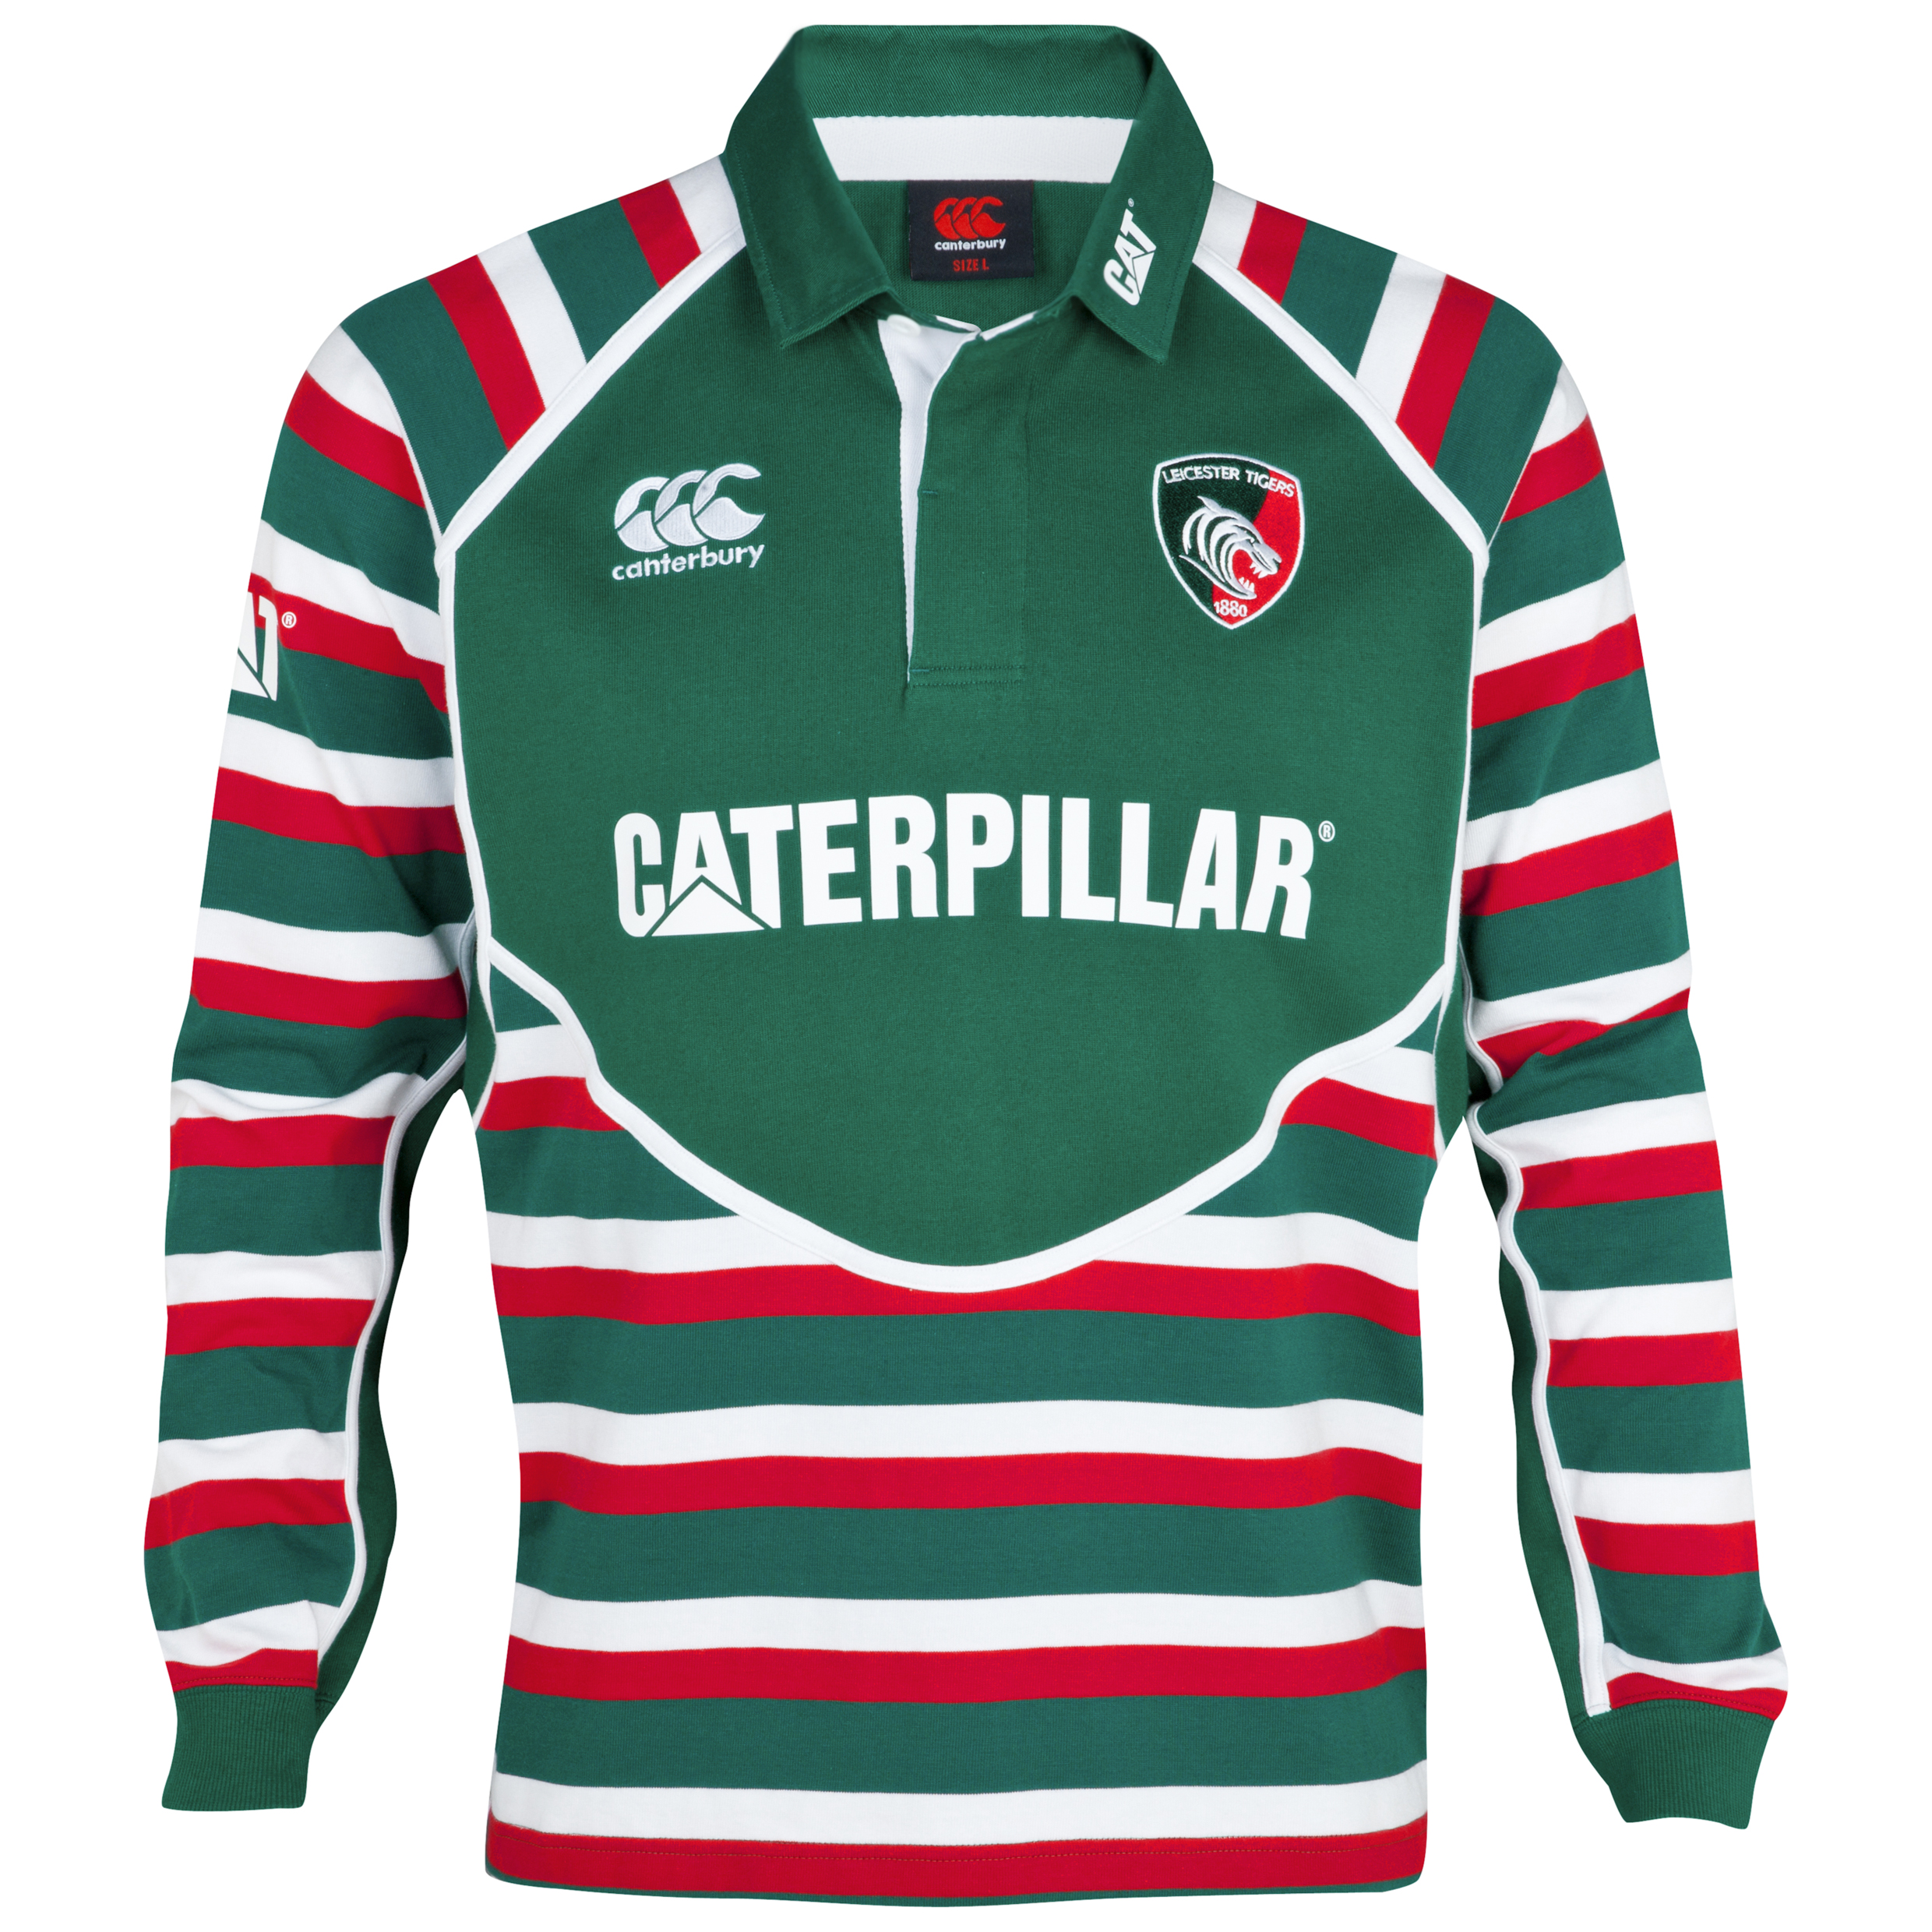 Leicester Tigers Home Classic Jersey 2012/13 - Long Sleeved - Junior